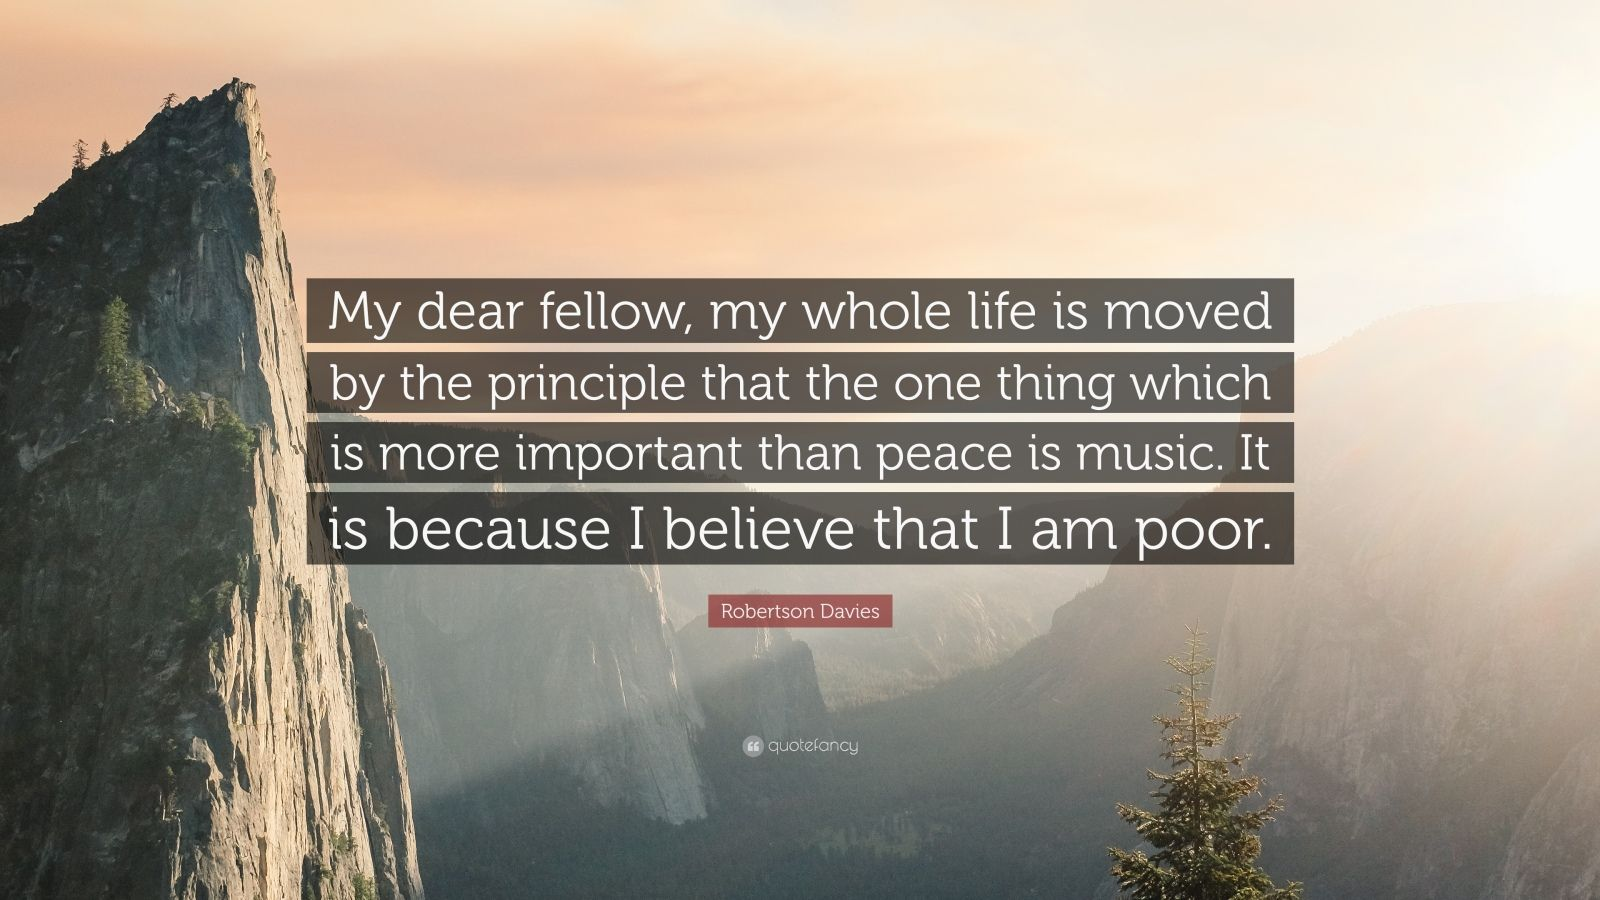 """Robertson Davies Quote: """"My dear fellow, my whole life is moved by the principle that the one thing which is more important than peace is music. It is because I believe that I am poor."""""""